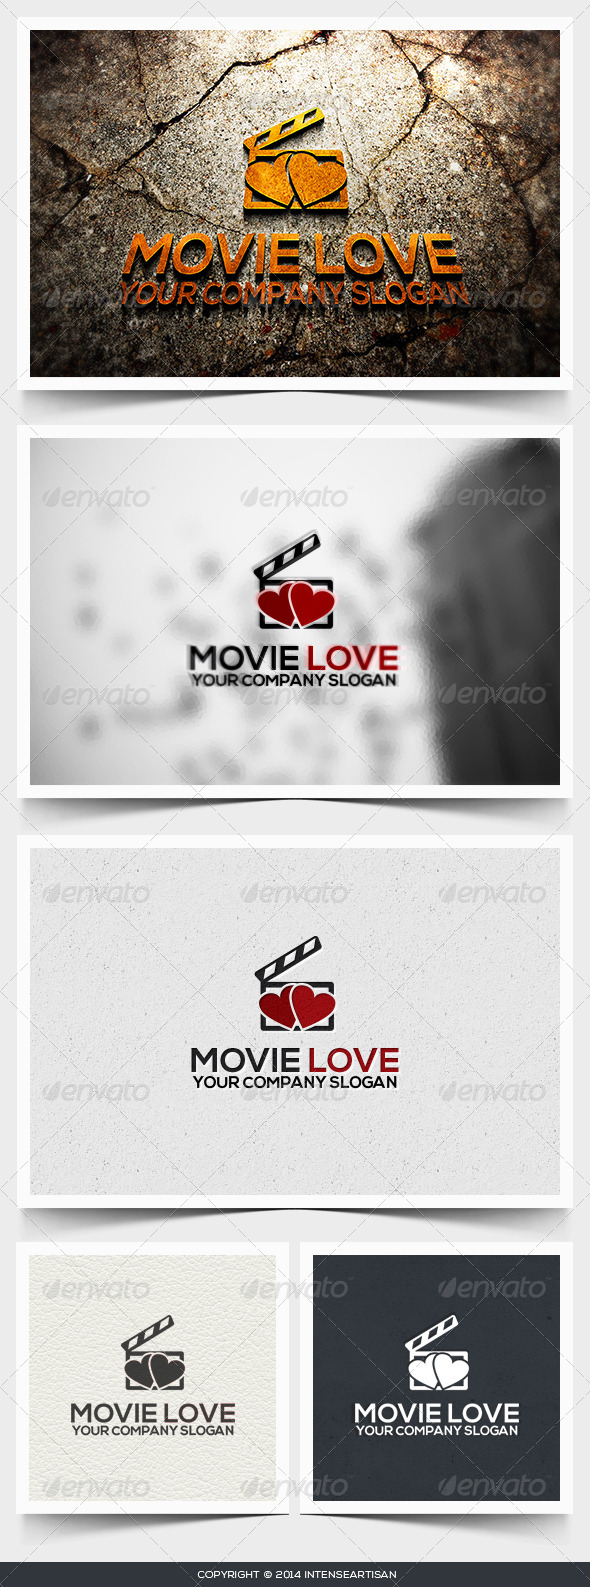 Movie Love Logo Template - Objects Logo Templates